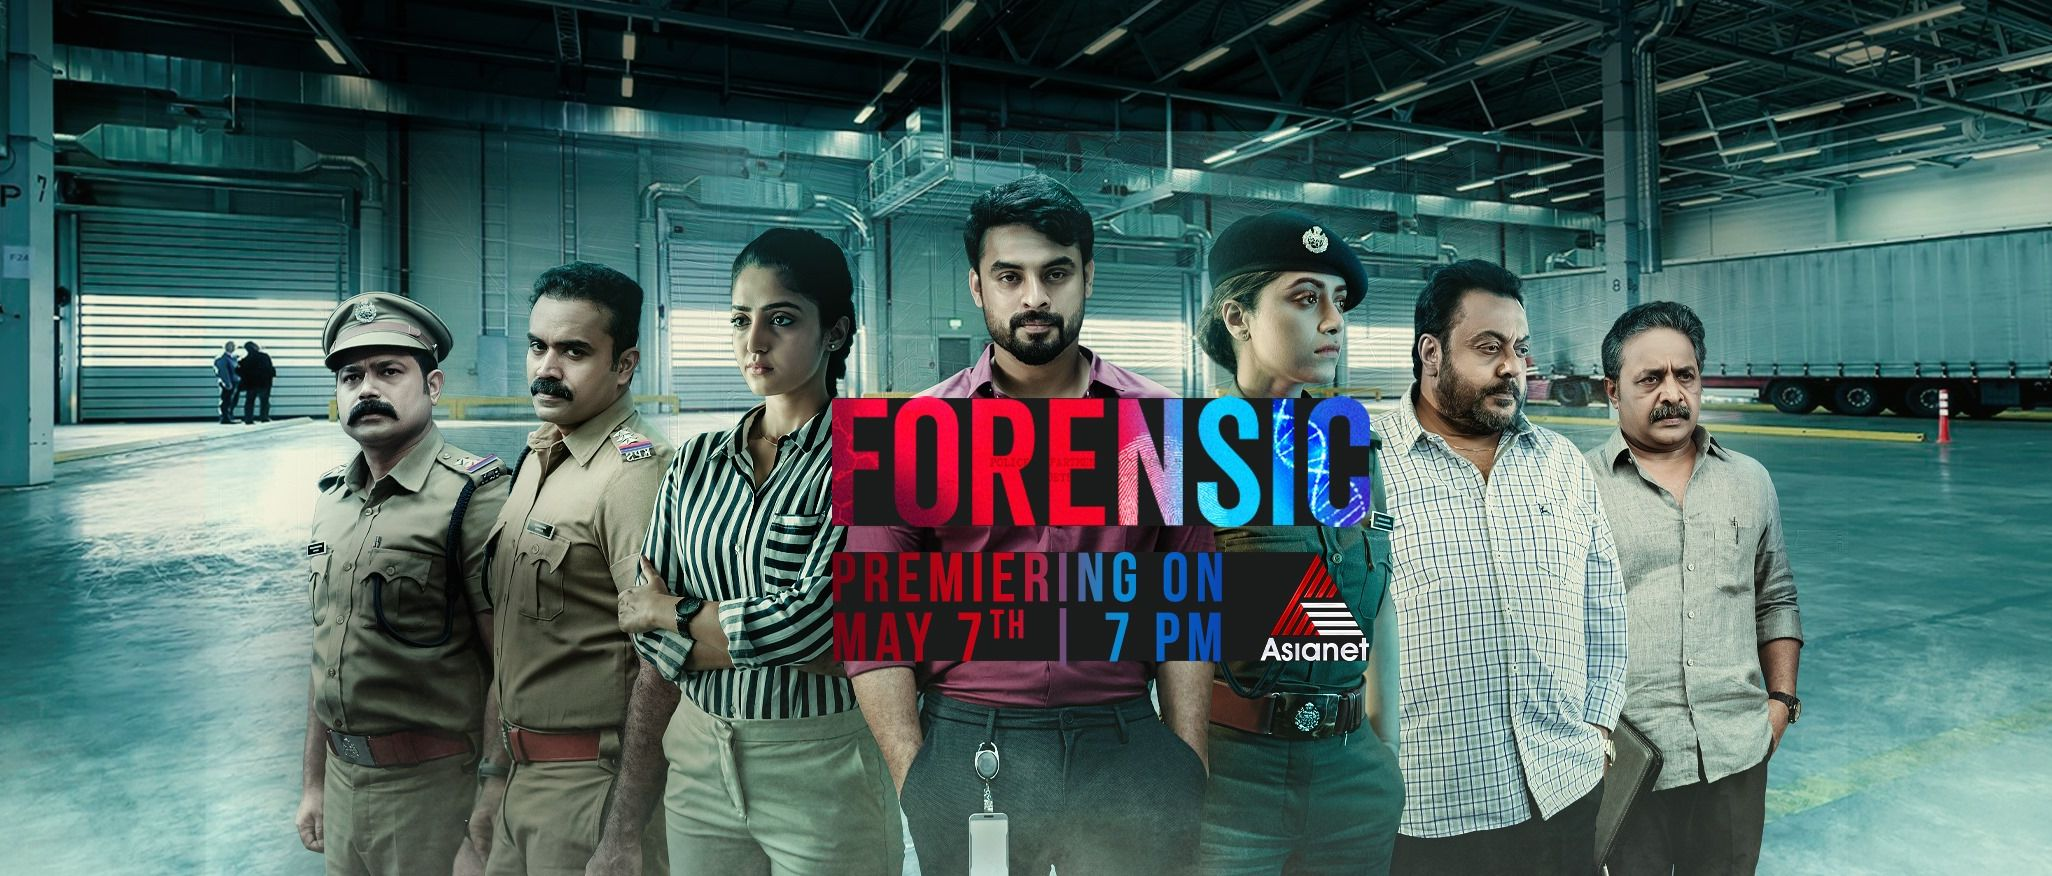 Forensic Movie Television Premier On Asianet 7th May At 7 00 P M